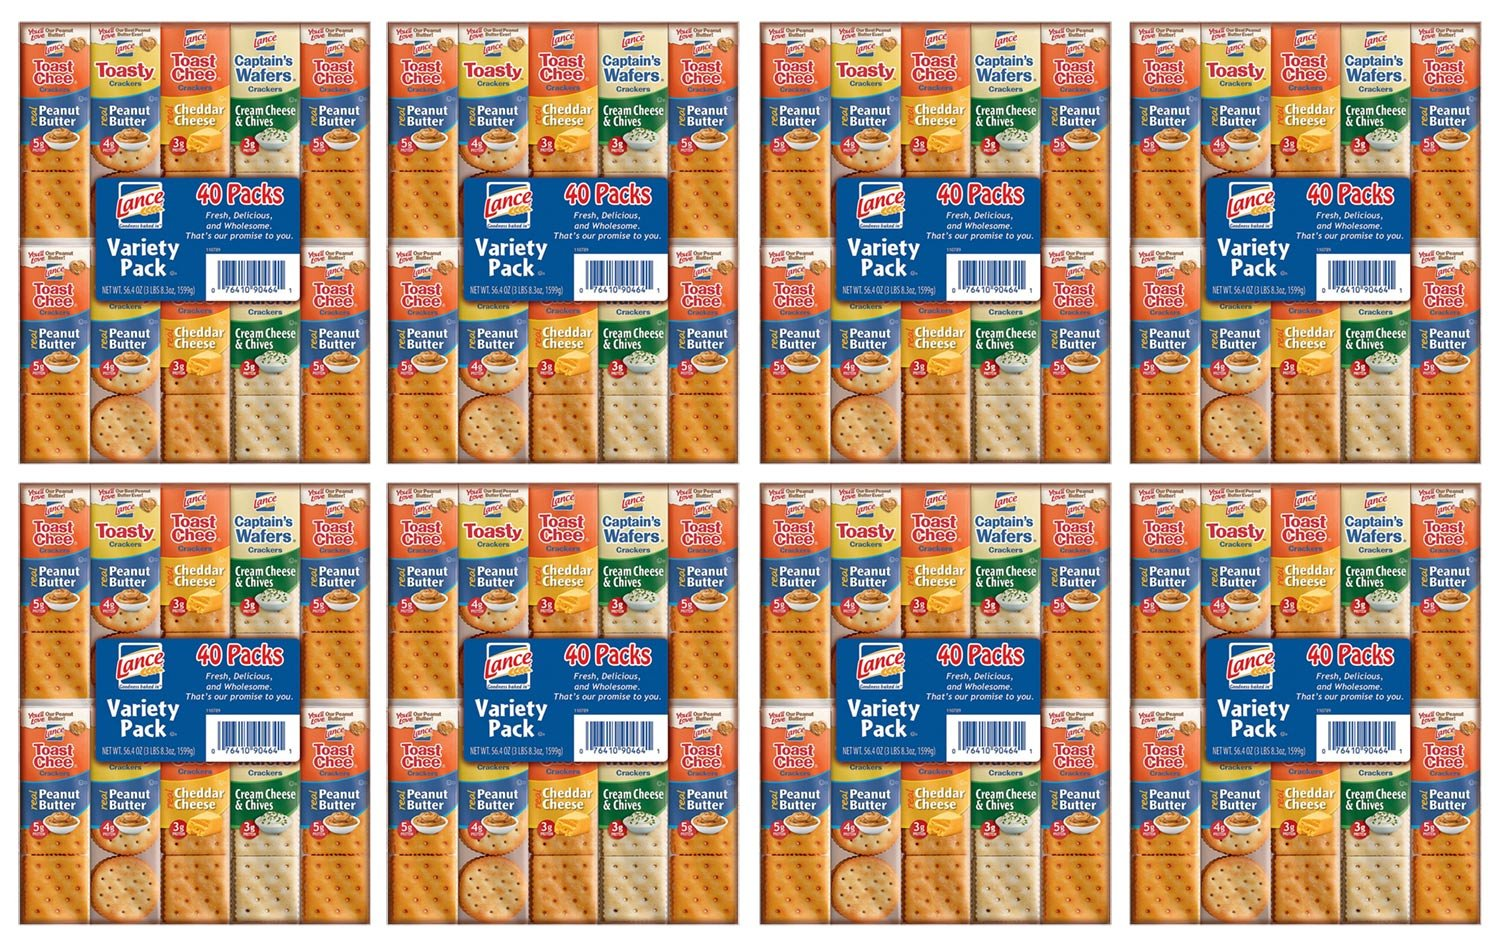 Lance Sandwich Cracker Variety Pack (40 ct.) - Pack of 8